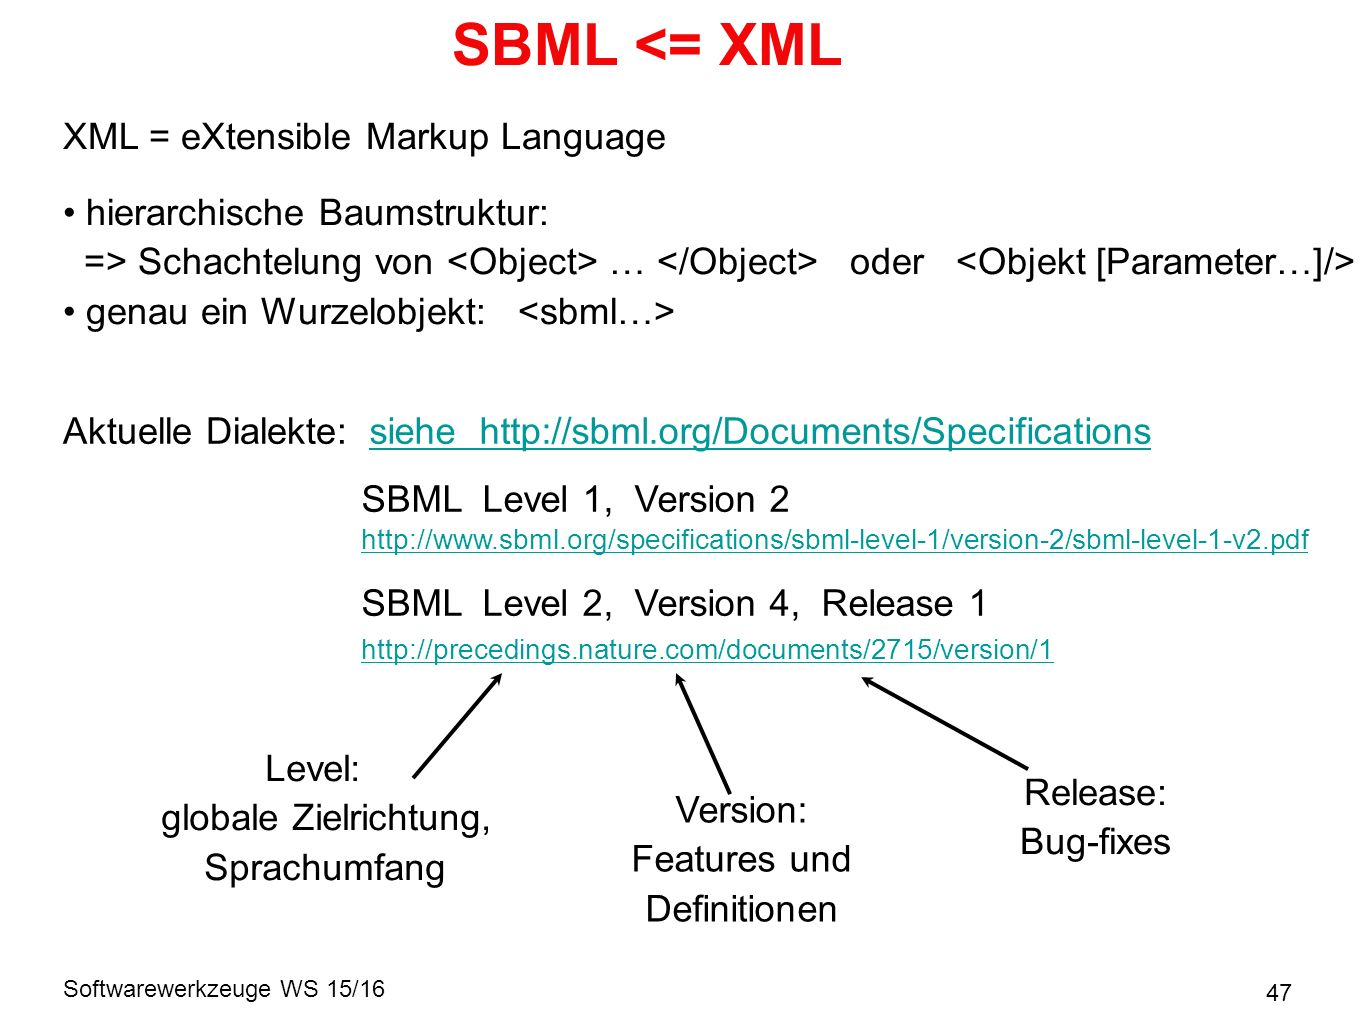 Softwarewerkzeuge WS 15/16 SBML <= XML 47 XML = eXtensible Markup Language hierarchische Baumstruktur: => Schachtelung von … oder genau ein Wurzelobjekt: Aktuelle Dialekte: SBML Level 1, Version 2 SBML Level 2, Version 4, Release 1 Level: globale Zielrichtung, Sprachumfang Version: Features und Definitionen Release: Bug-fixes siehe http://sbml.org/Documents/Specifications http://precedings.nature.com/documents/2715/version/1 http://www.sbml.org/specifications/sbml-level-1/version-2/sbml-level-1-v2.pdf